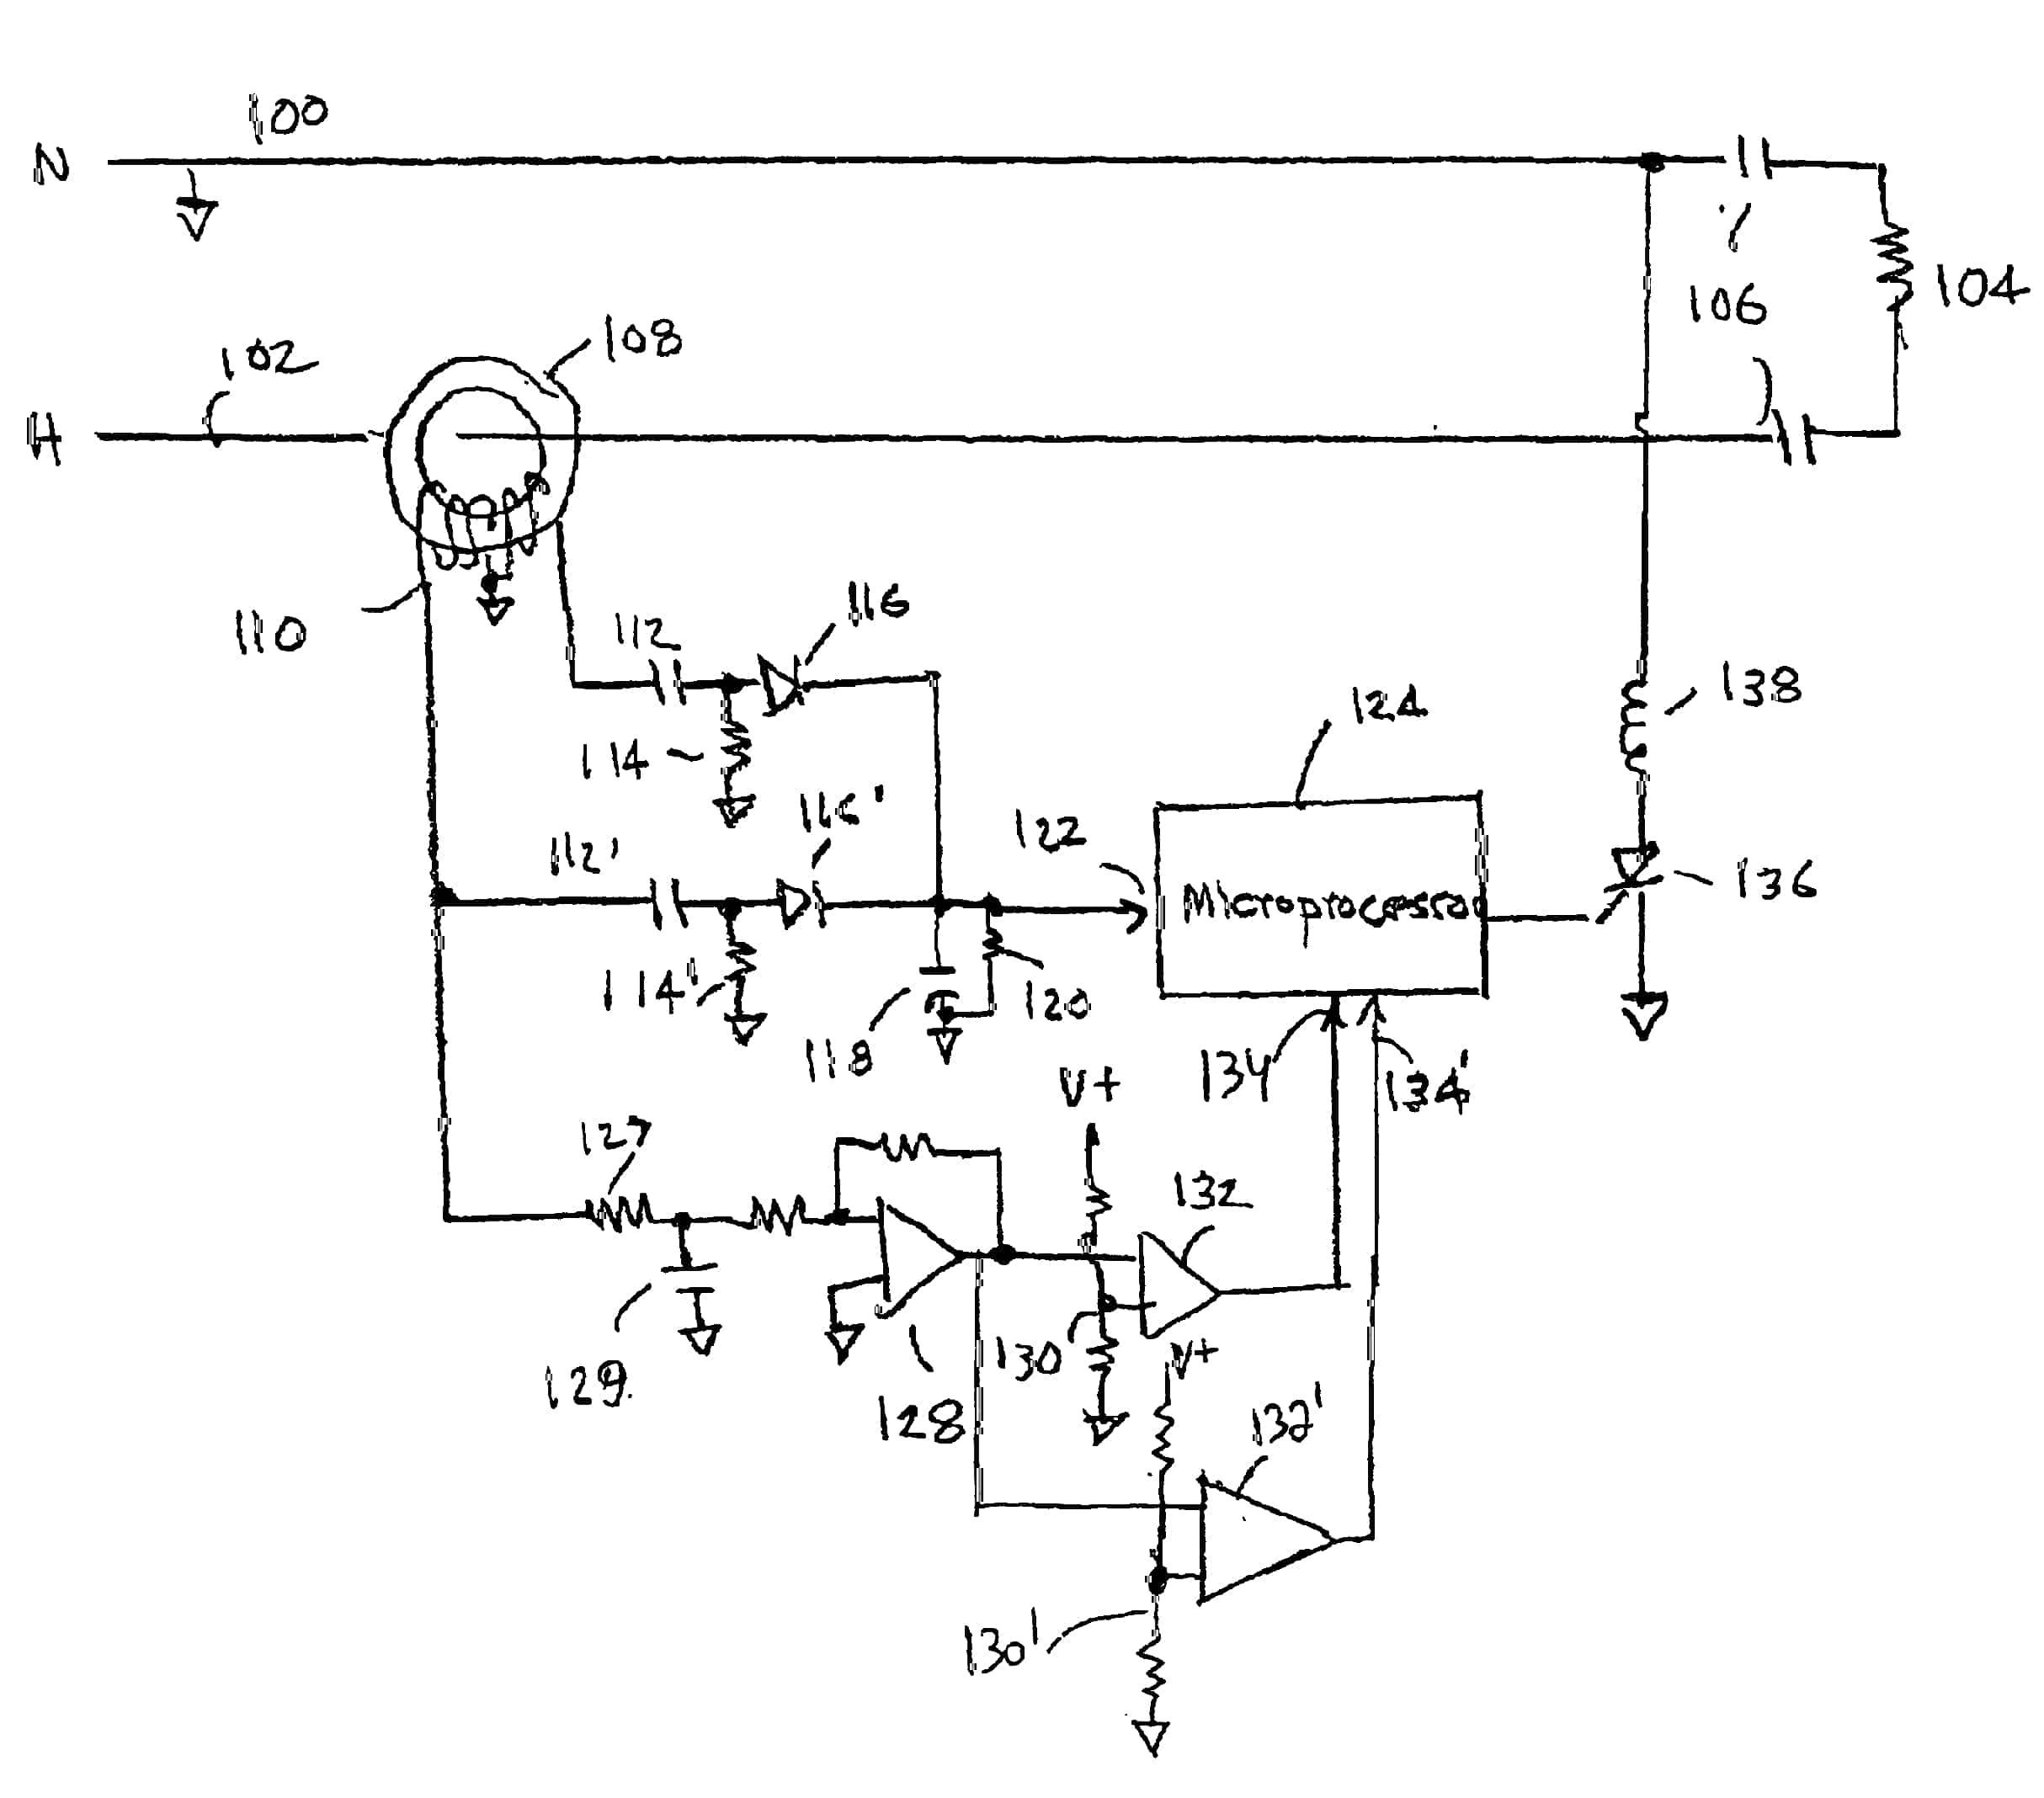 wiring diagram circuit breaker panel with Electric Breaker Wiring Diagram on 12 Volt Dash Socket as well 4z5cj No Power Panel Ignition Switch also Vfd In Mine Industry 954978 furthermore Electrical Wiring Diagrams For Dummies in addition Howtowireagfcibreaker.